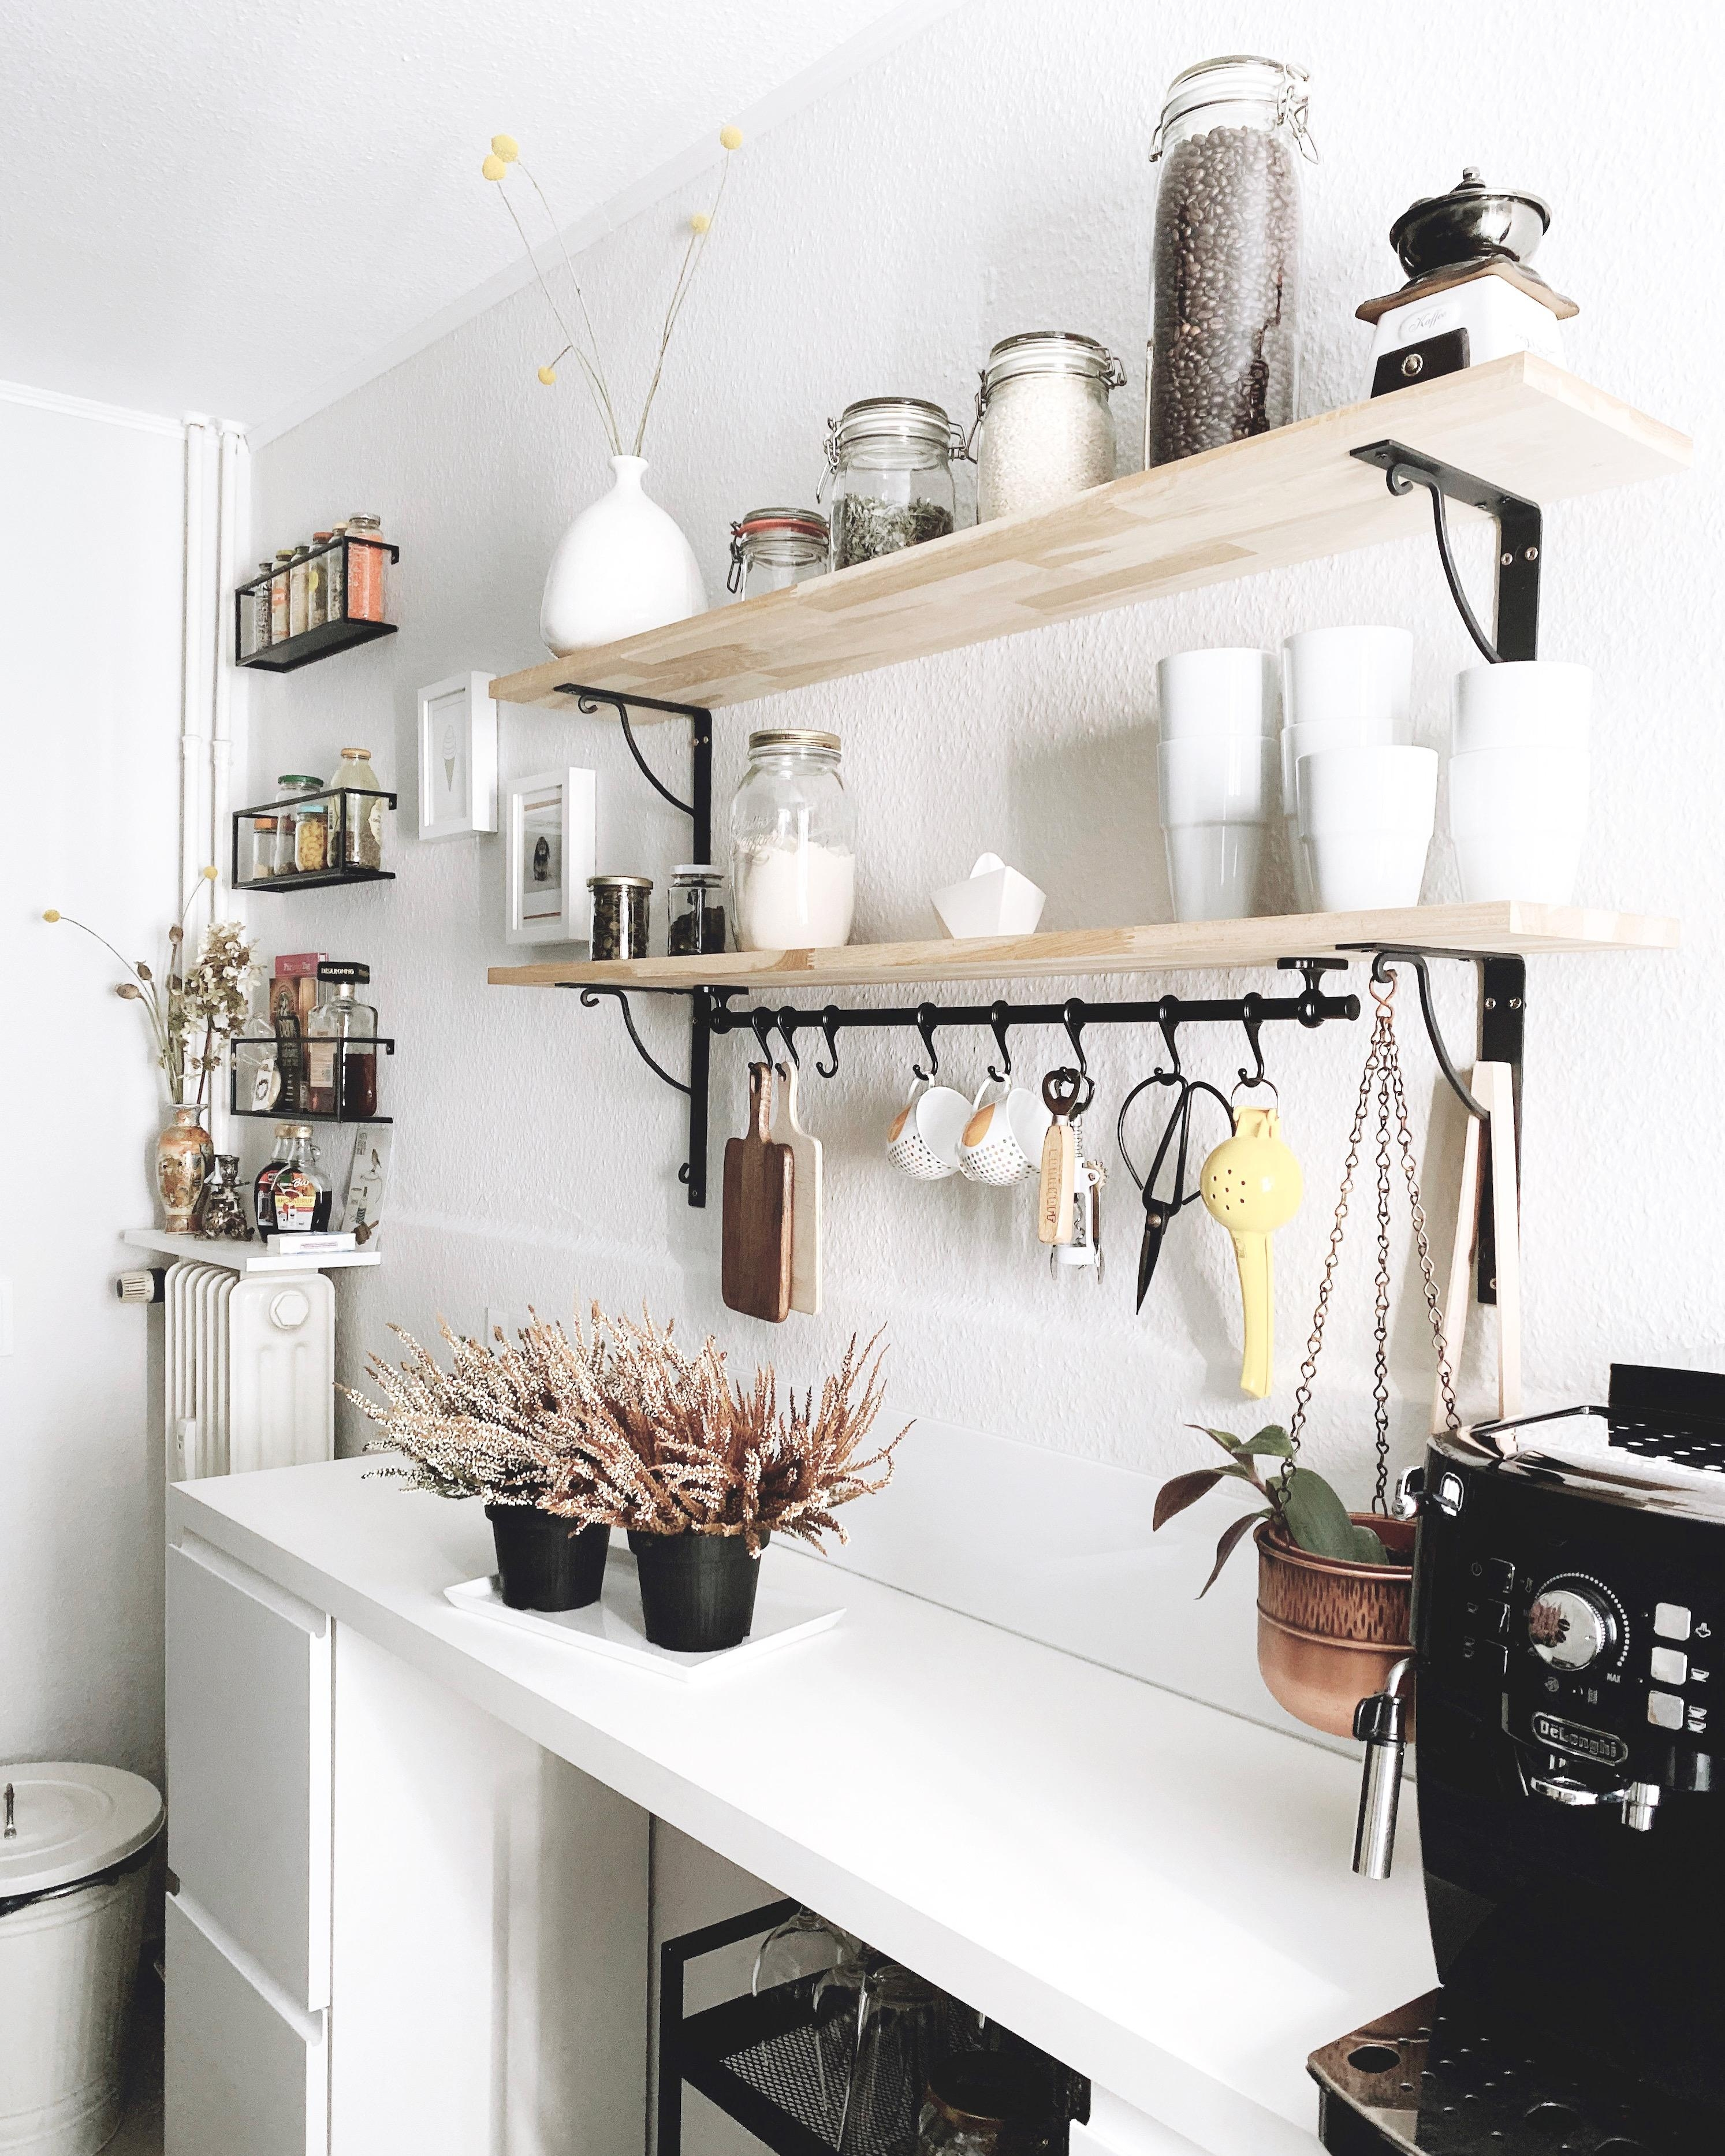 #kitchen #minimalistic #scandystyle #nordichome #monochrome #interior #kitcheninspo #scandinavianliving